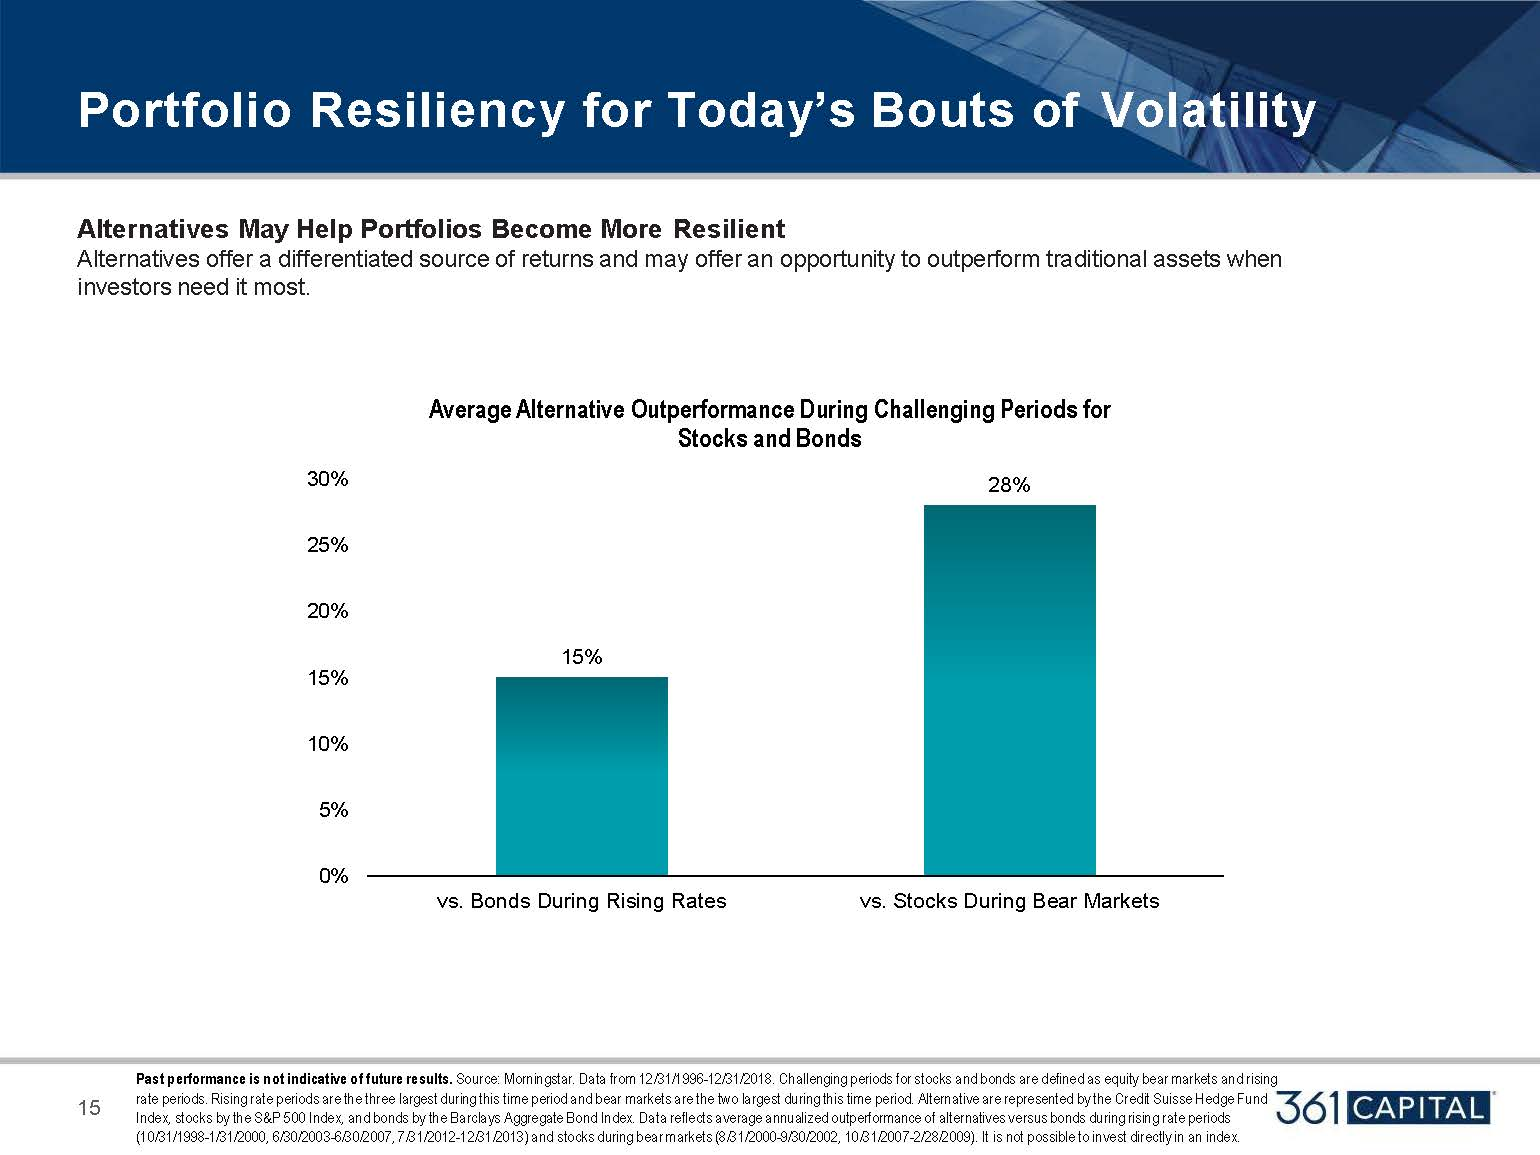 Alternatives may help portfolios become more resilient